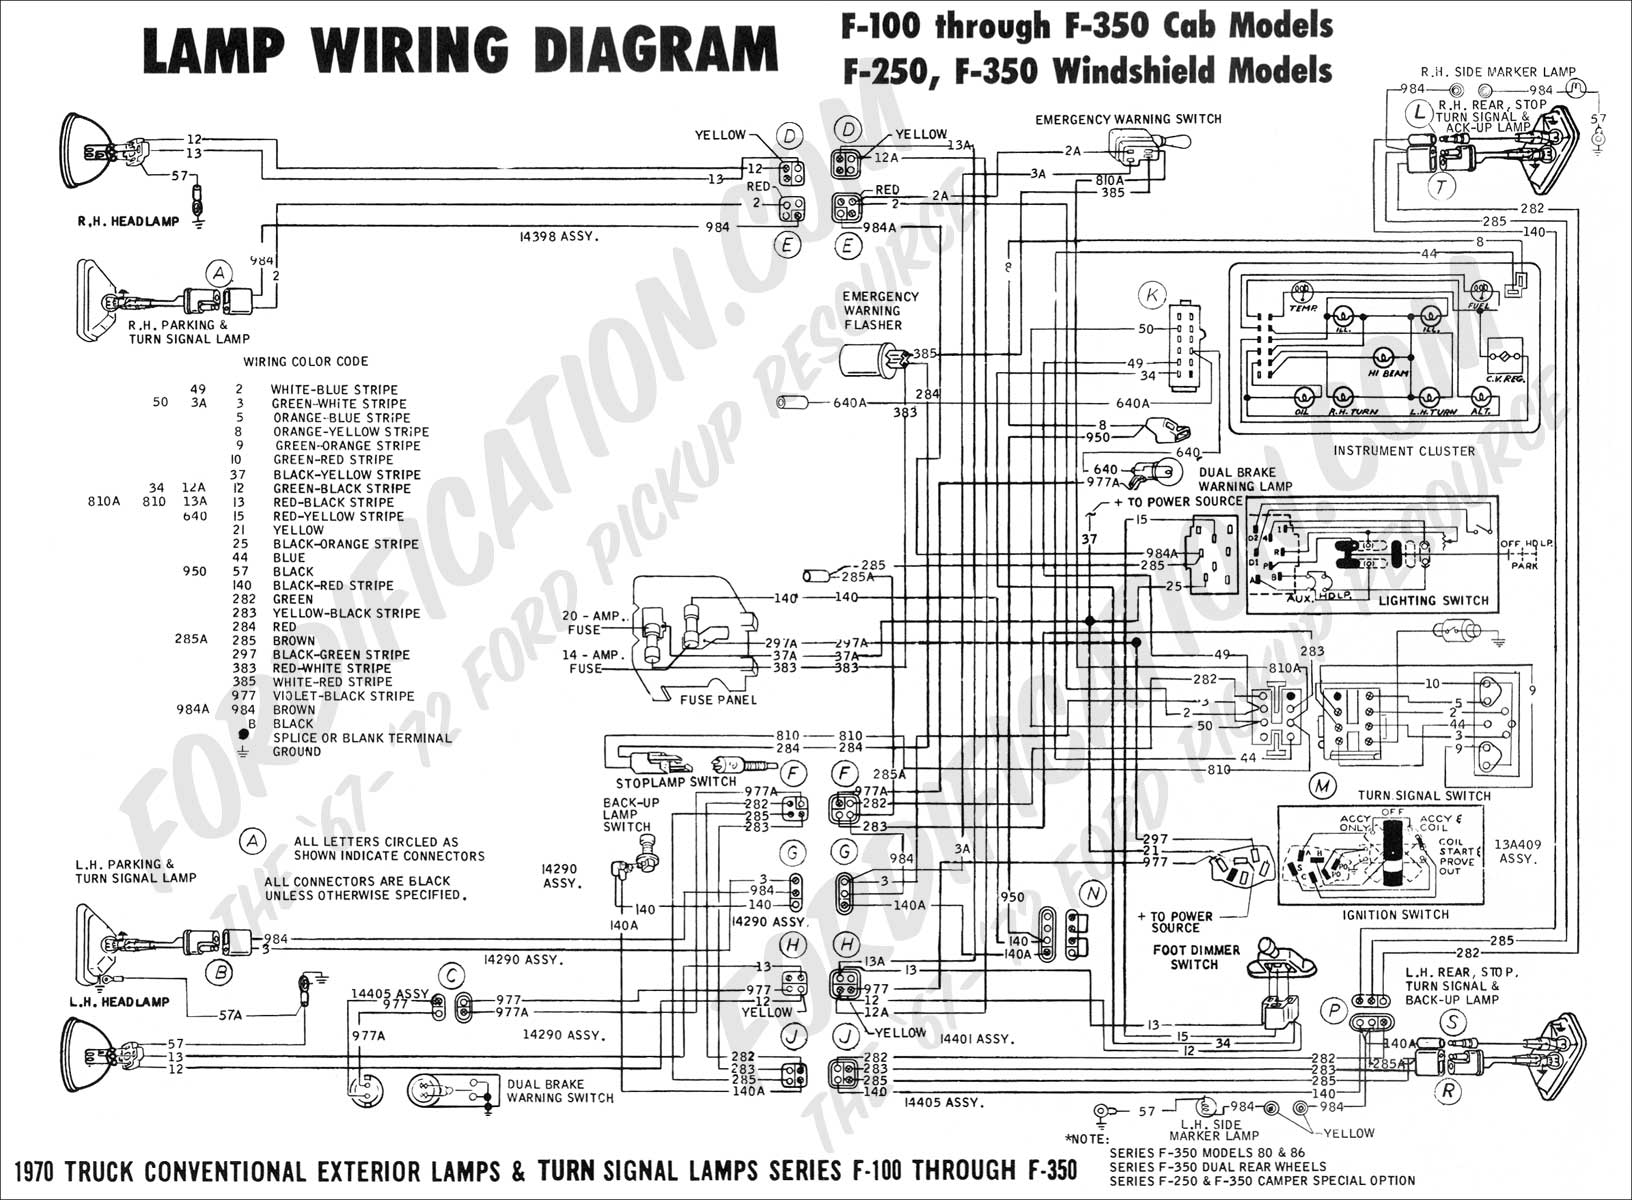 wiring diagram_70ext lights01 2008 ford f250 wiring diagram 2008 ford f250 remote start wiring 2012 ford f250 tail light wiring diagram at gsmx.co